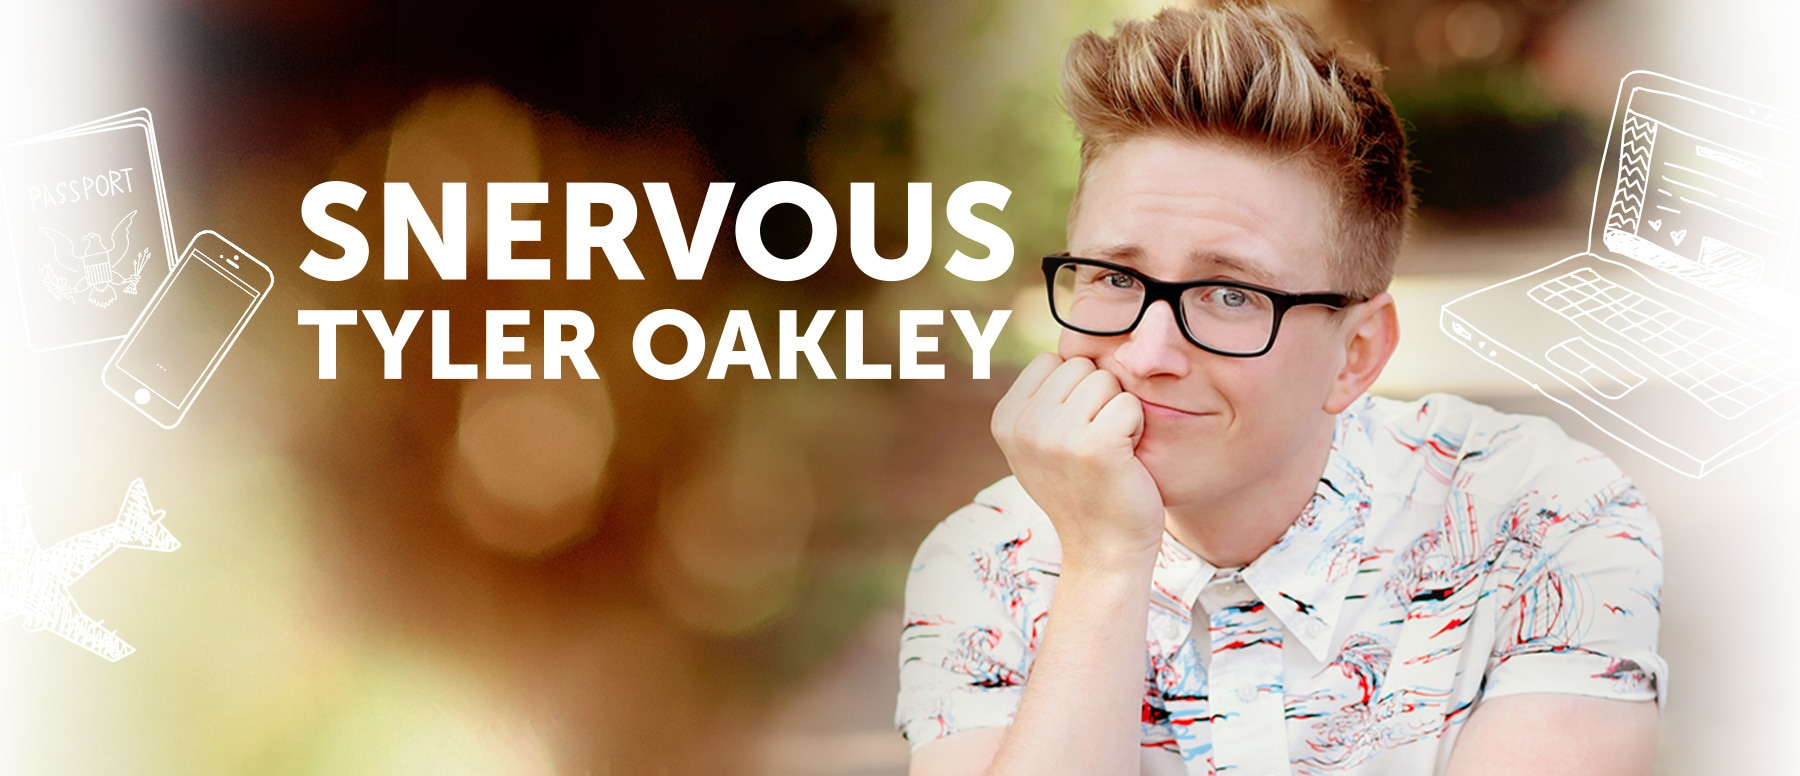 Snervous Tyler Oakley Hero